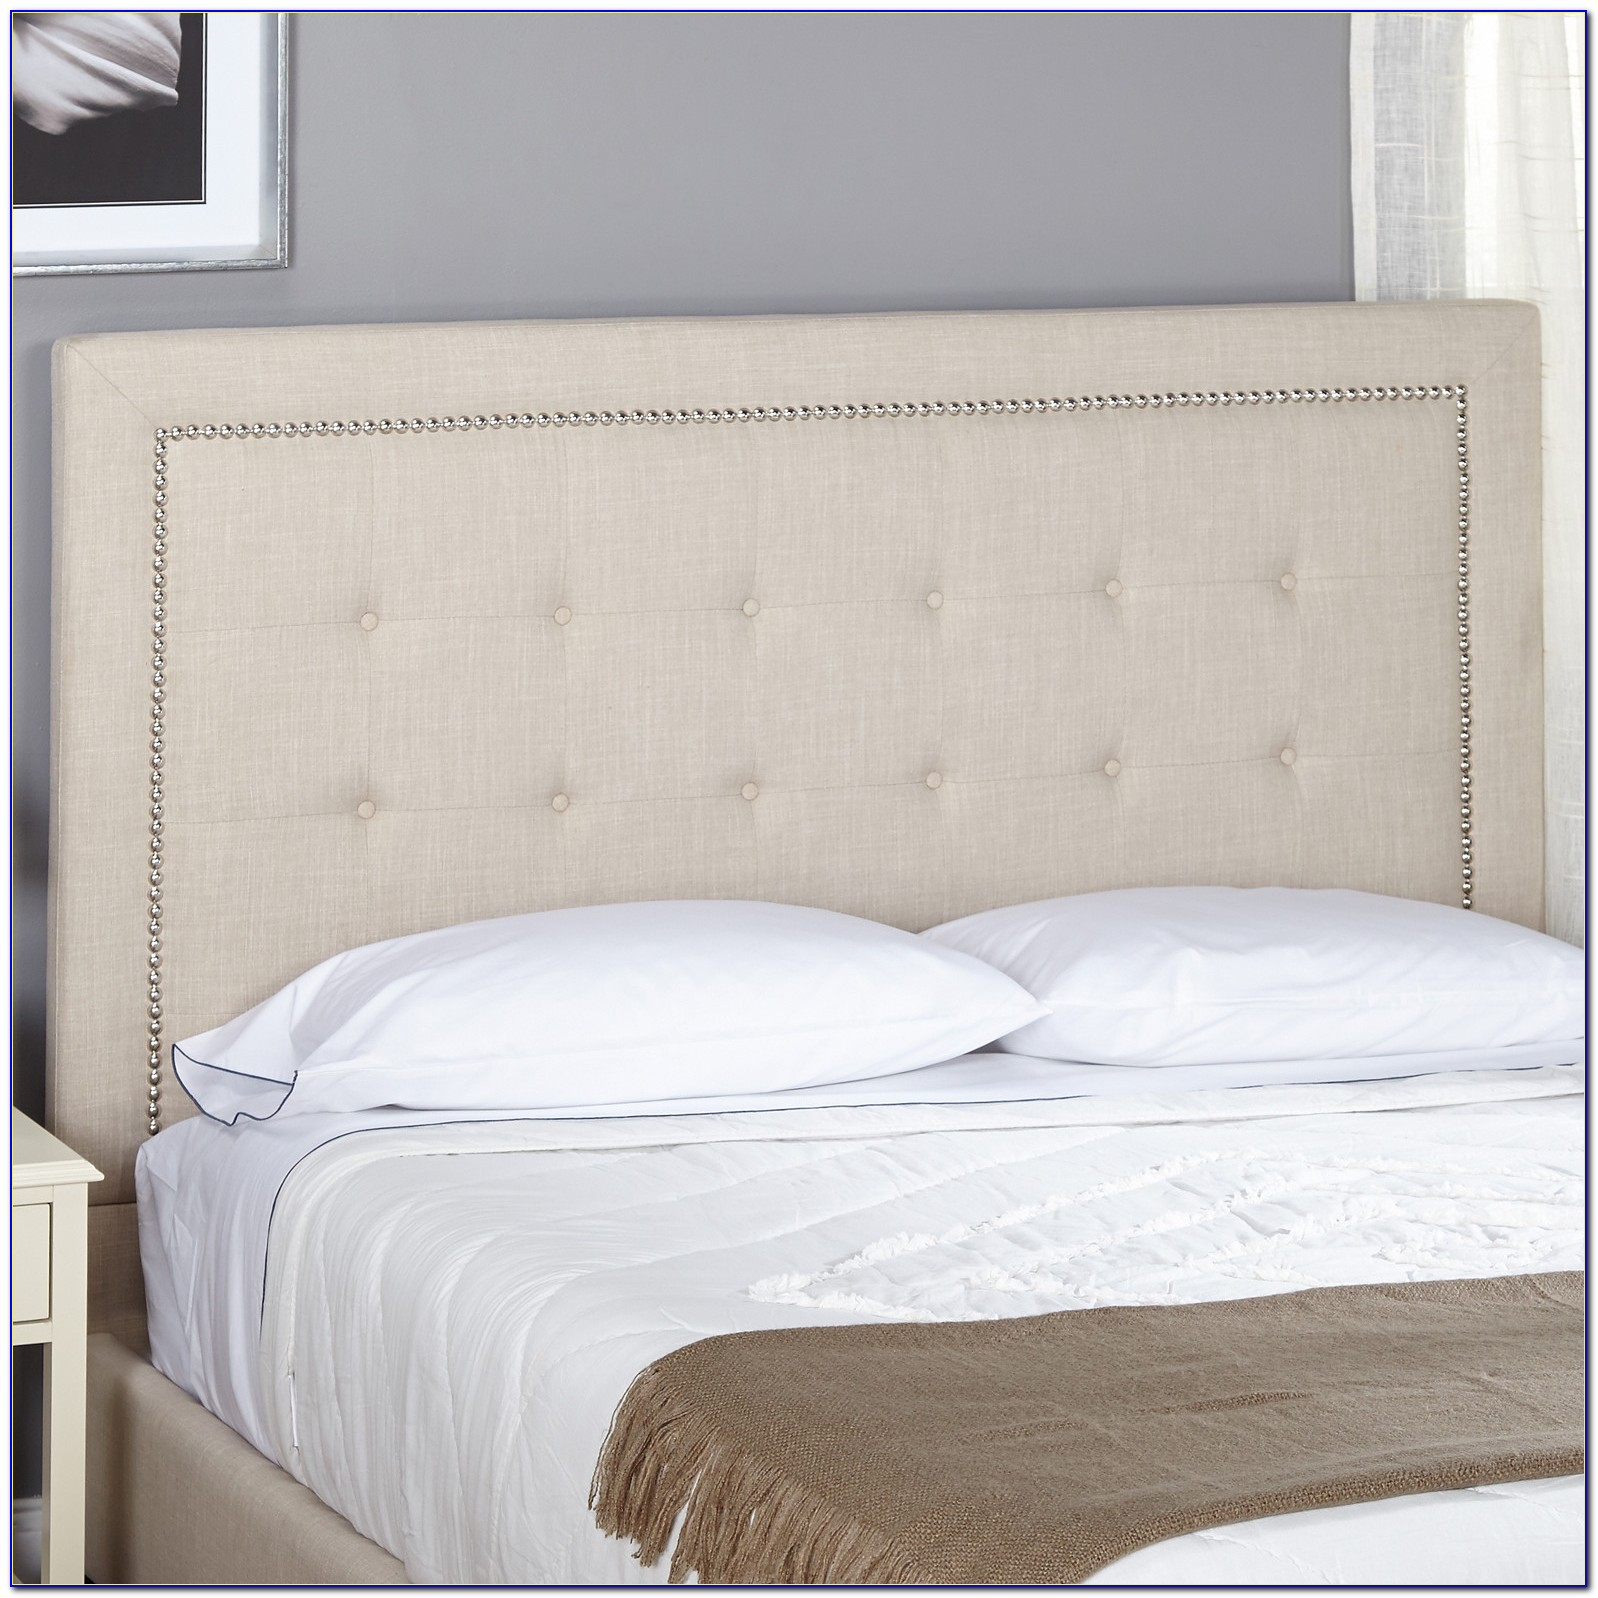 Big King Size Headboards